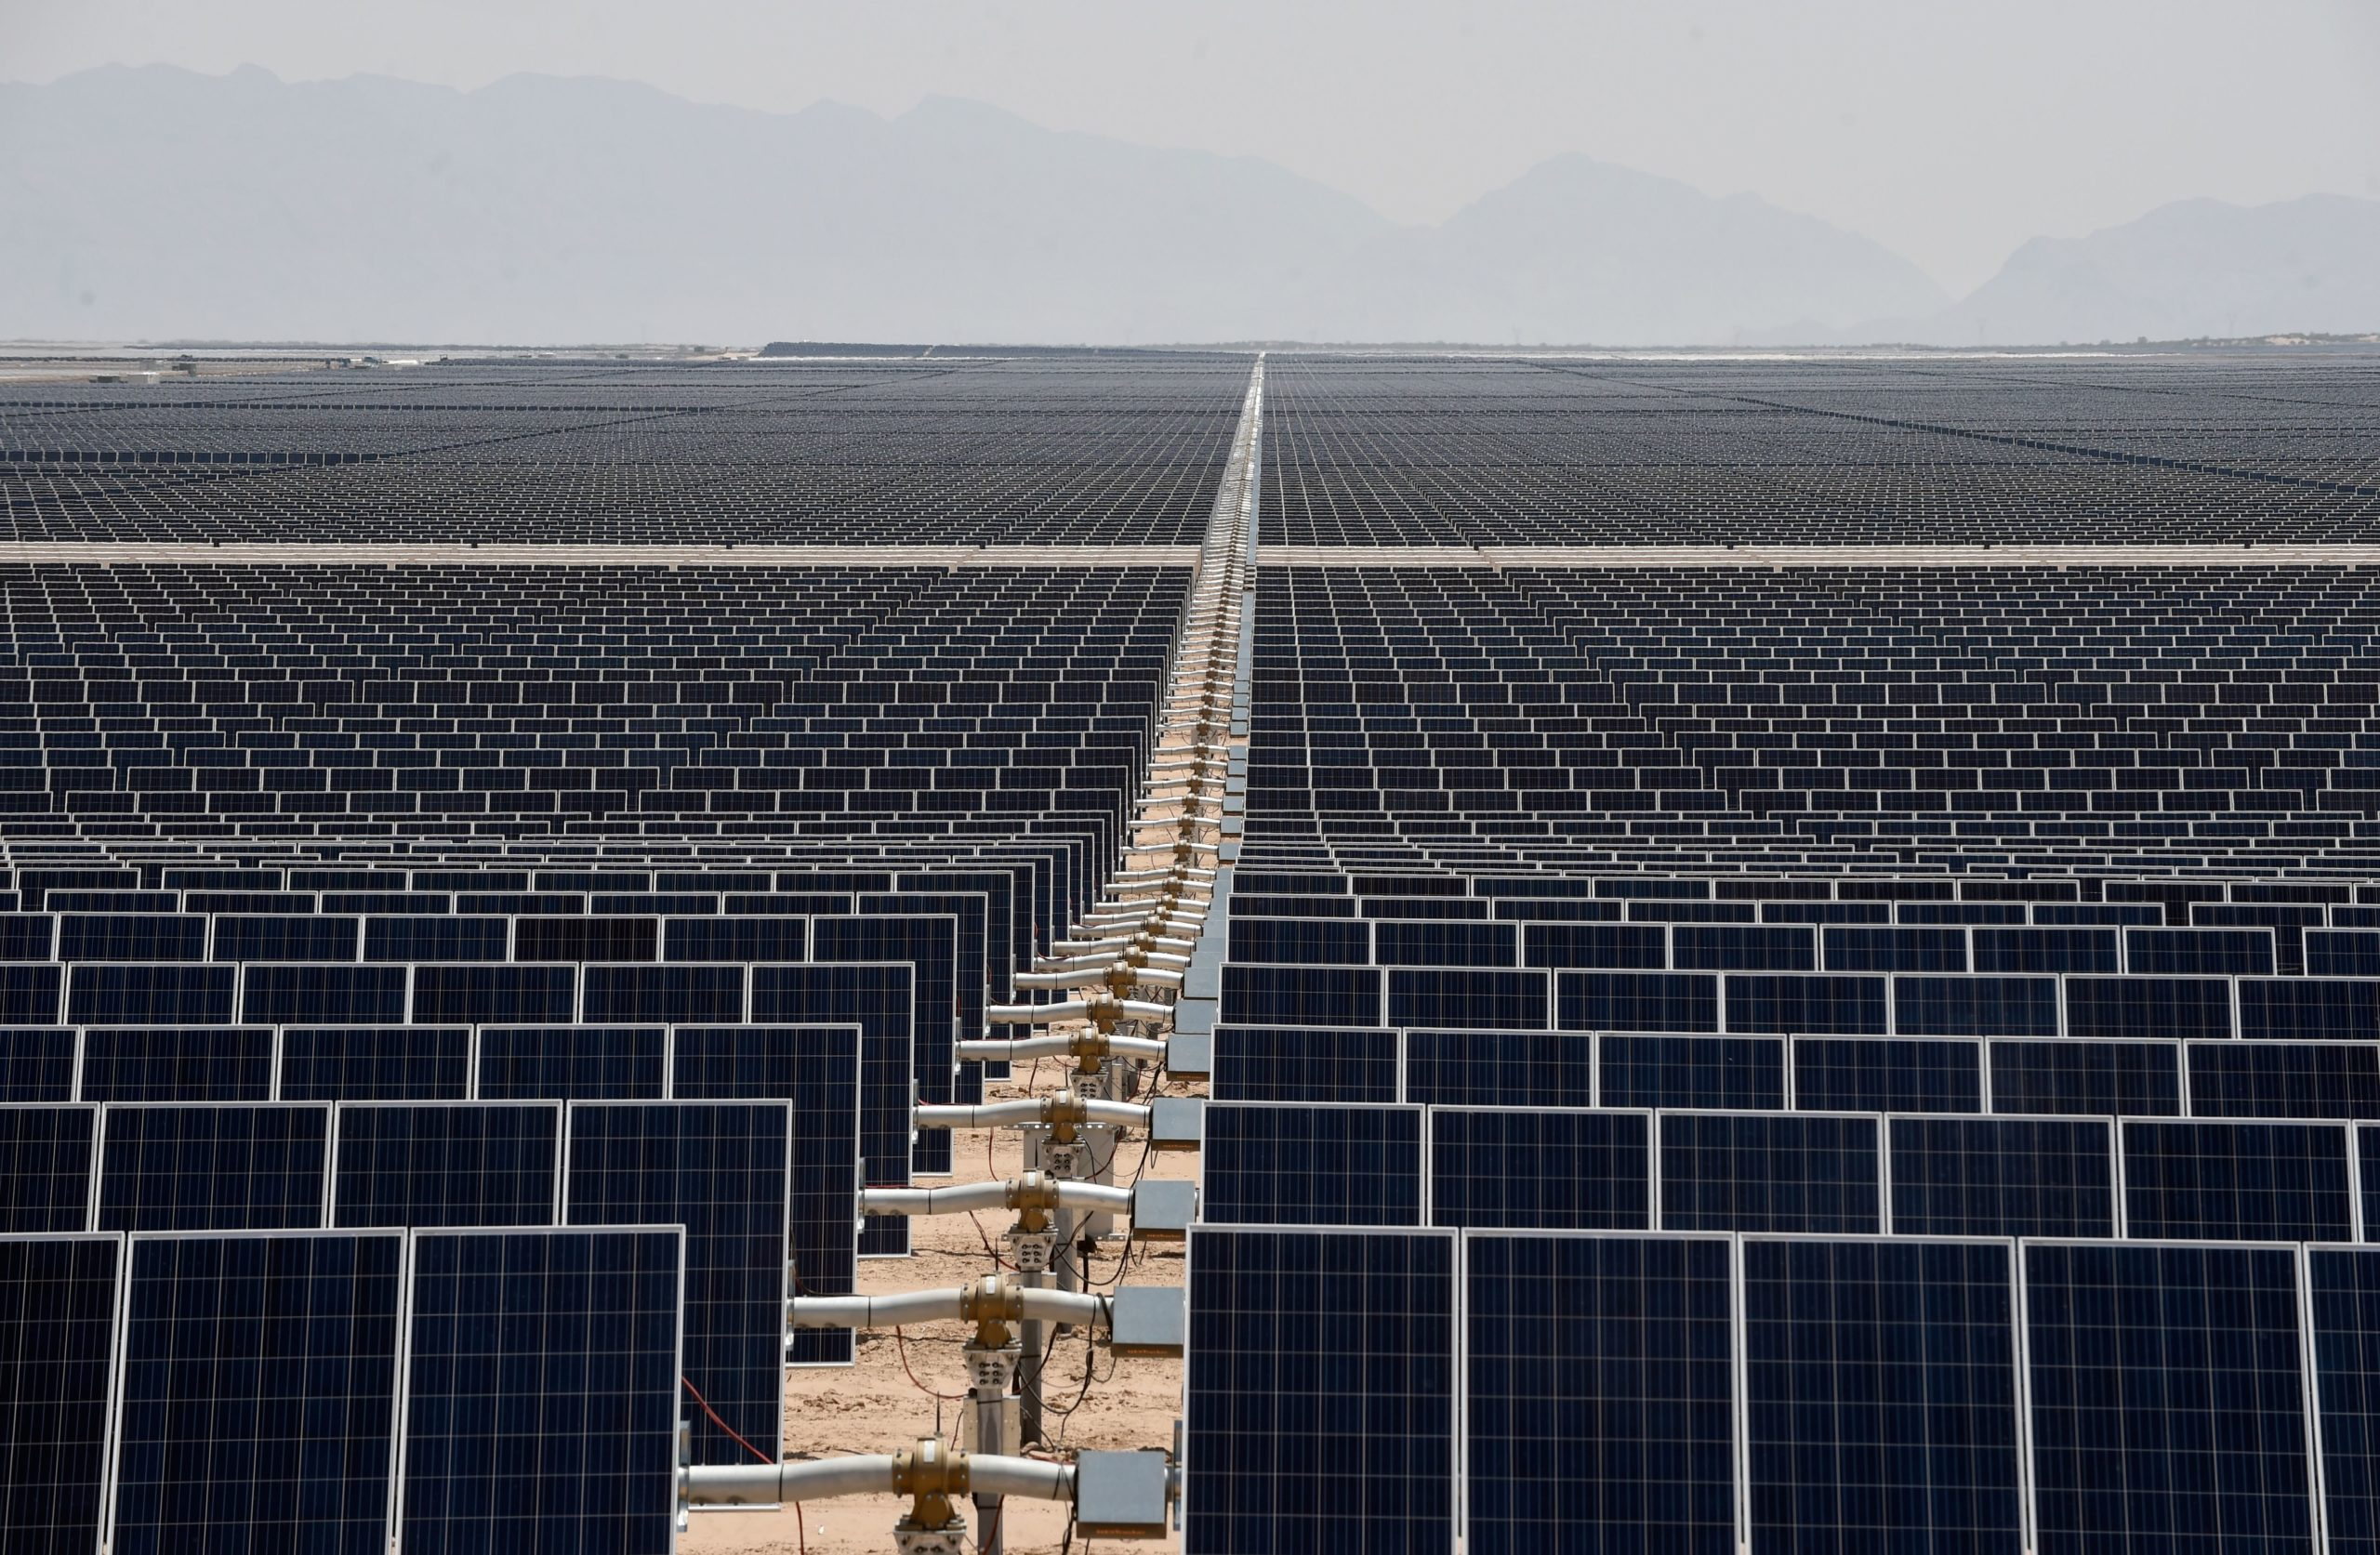 A solar power plant in Mexico is pictured in 2018. (Alfredo Estrella/AFP via Getty Images)